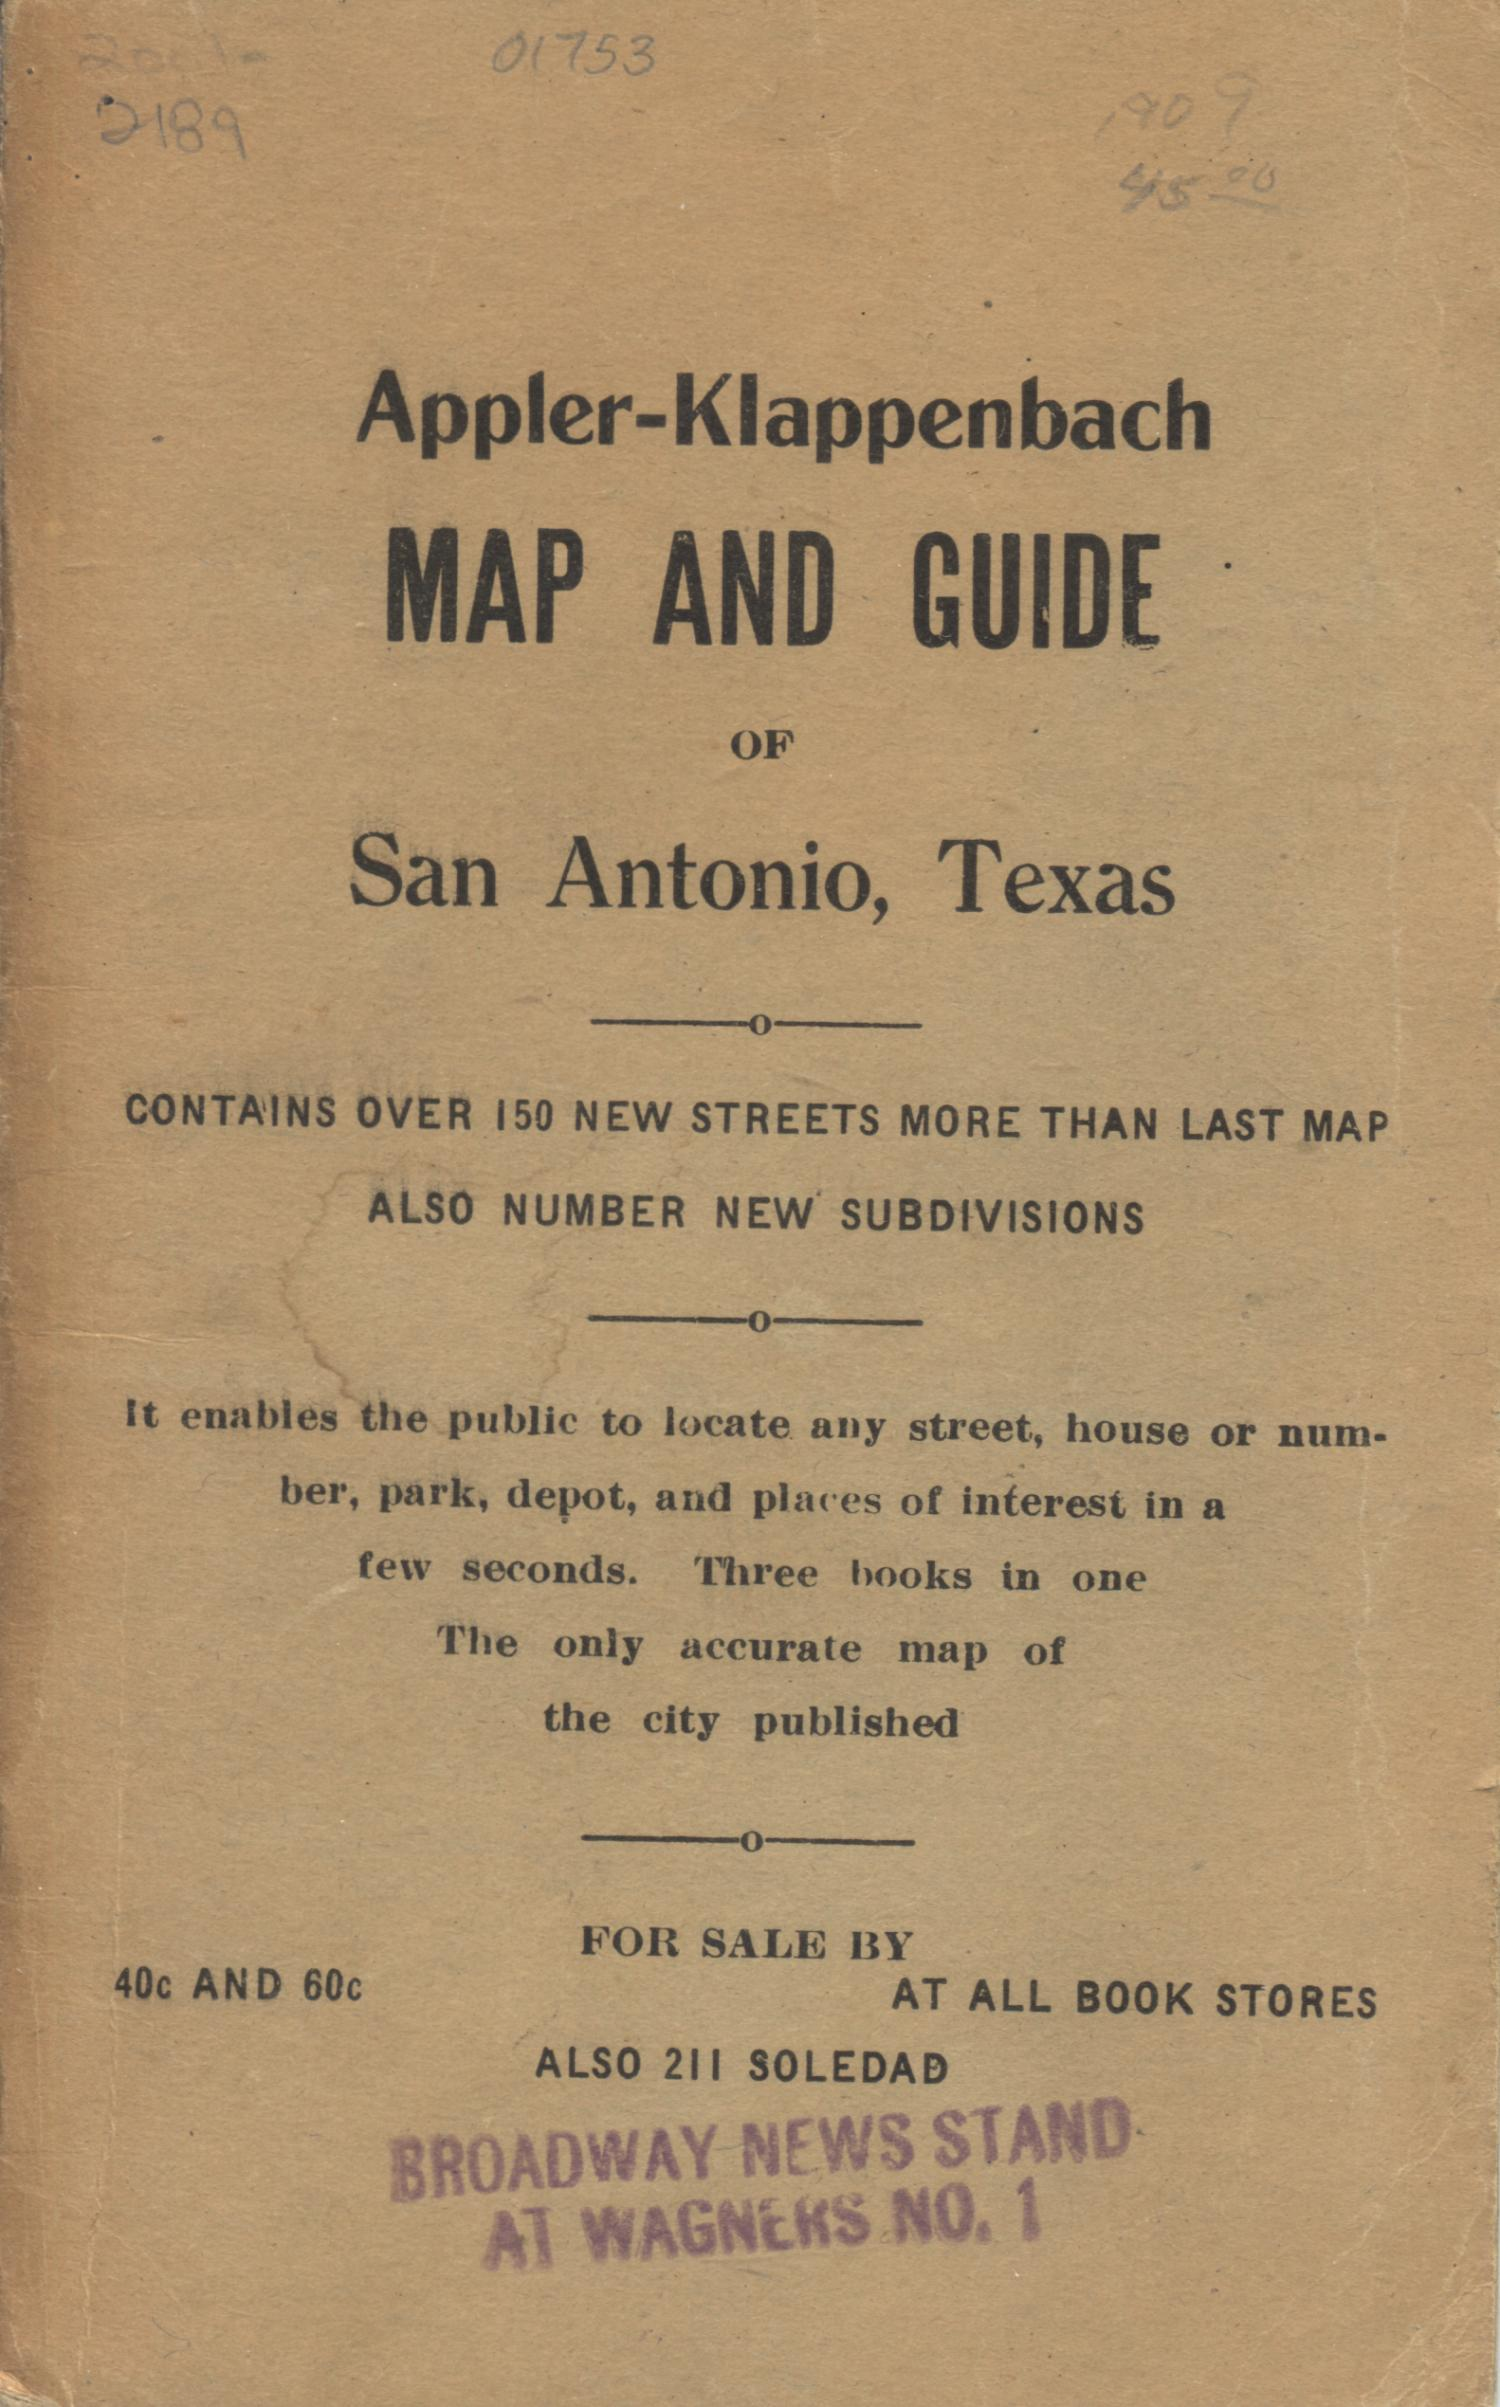 Map of San Antonio and additions [Accompanying Text]., Explanation and supporting information related to map that shows early twentieth century San Antonio, Texas street names, railroads, neighborhoods, parks, country clubs, cemeteries, and some buildings, institutions, and businesses.,